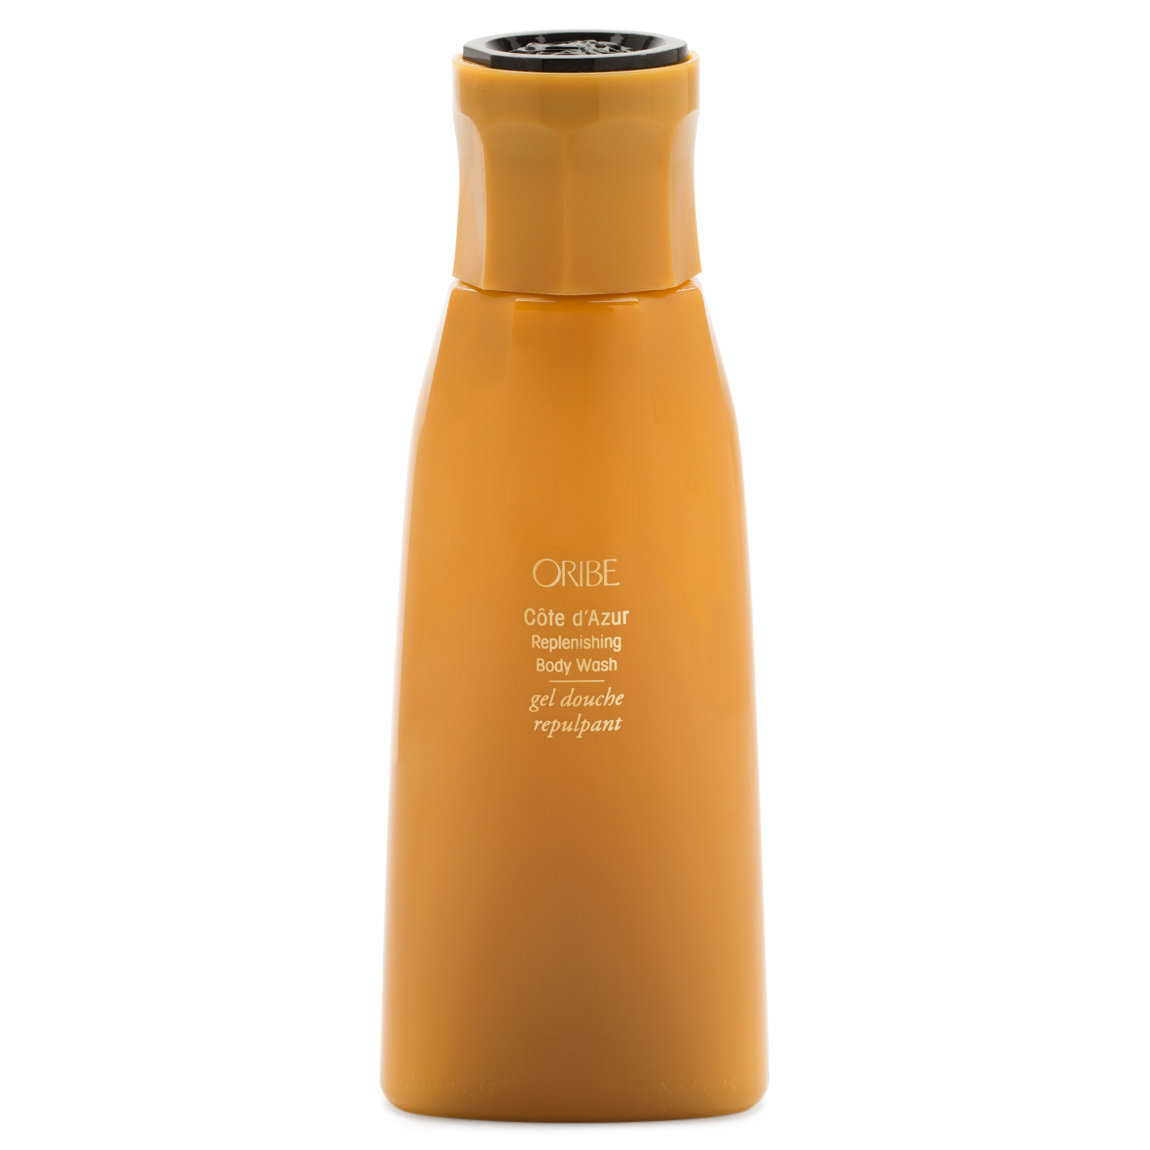 Oribe Côte d'Azur Replenishing Body Wash product smear.